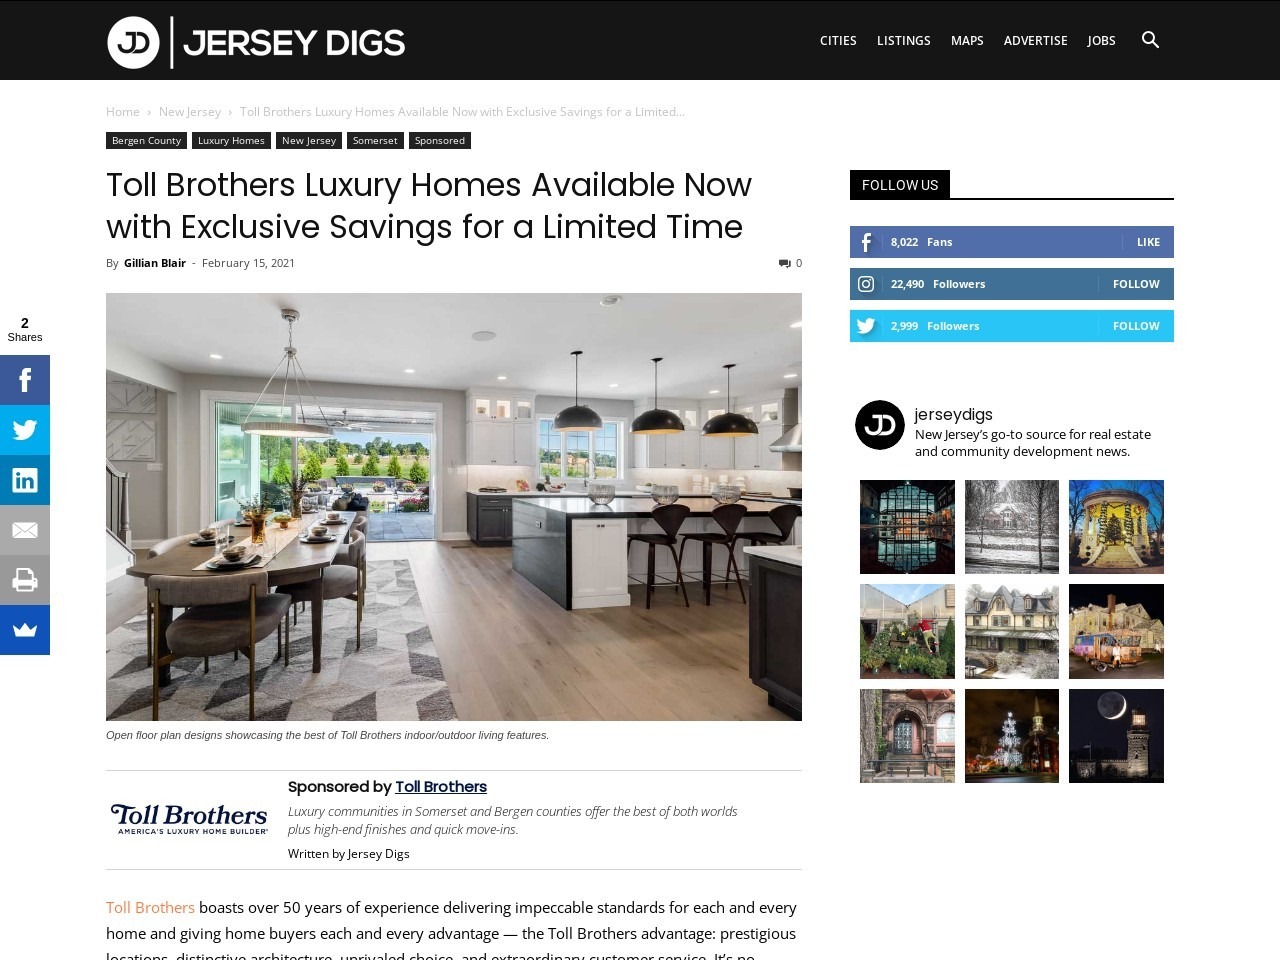 Toll Brothers Luxury Homes Available Now with Exclusive Savings for a Limited Time